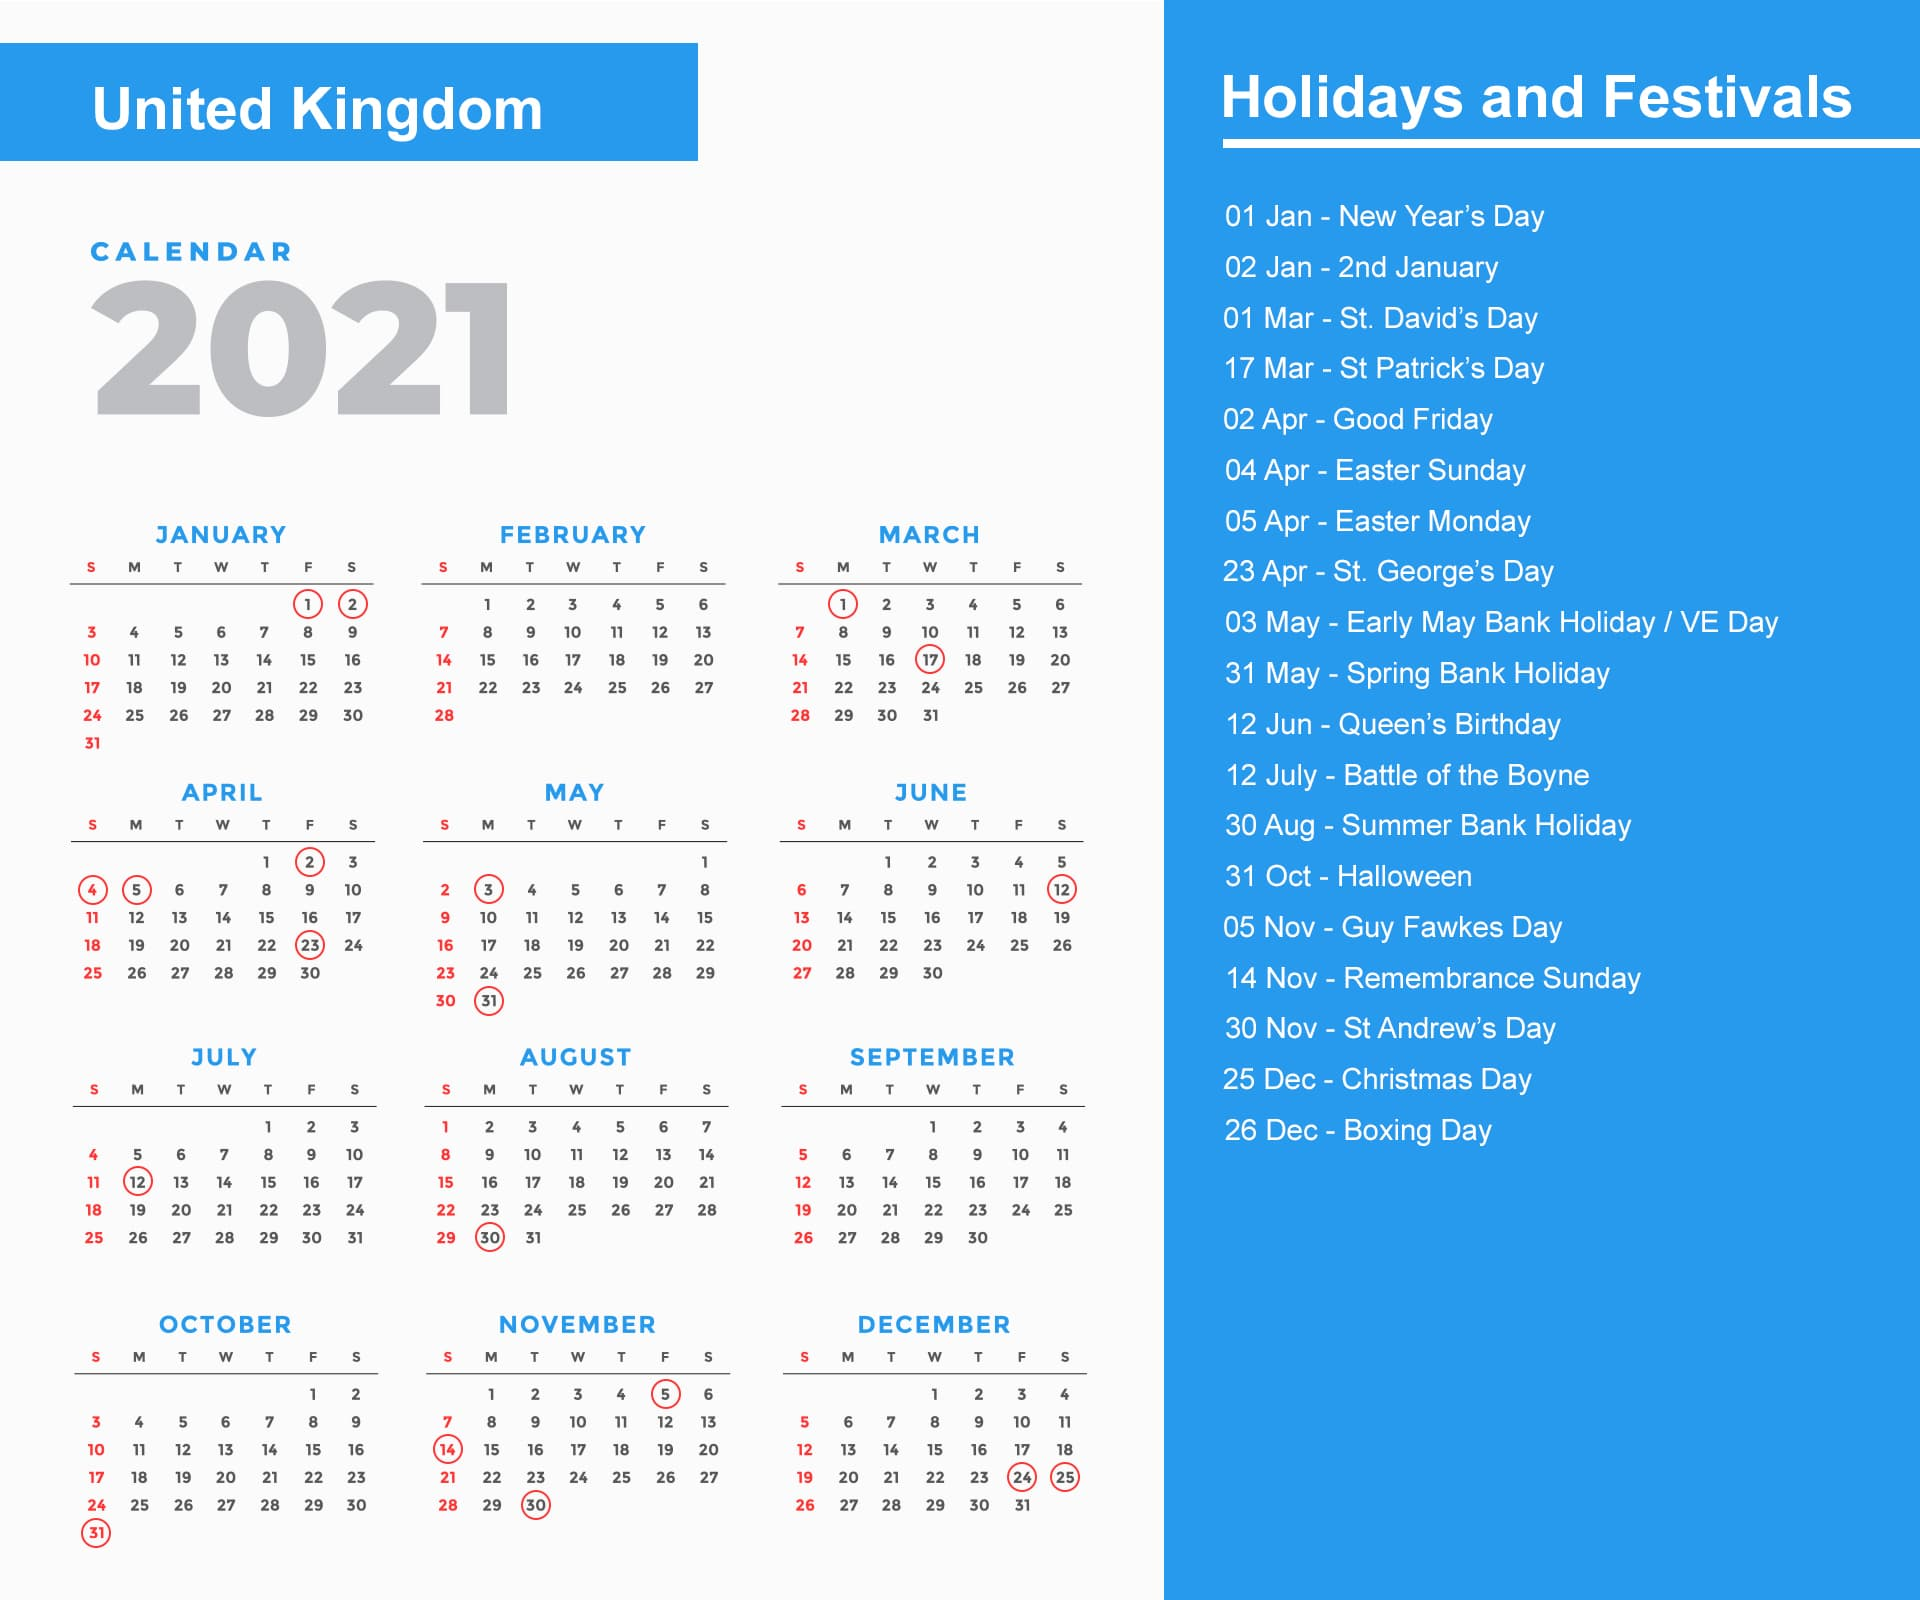 United Kingdom Holidays Calendar 2021